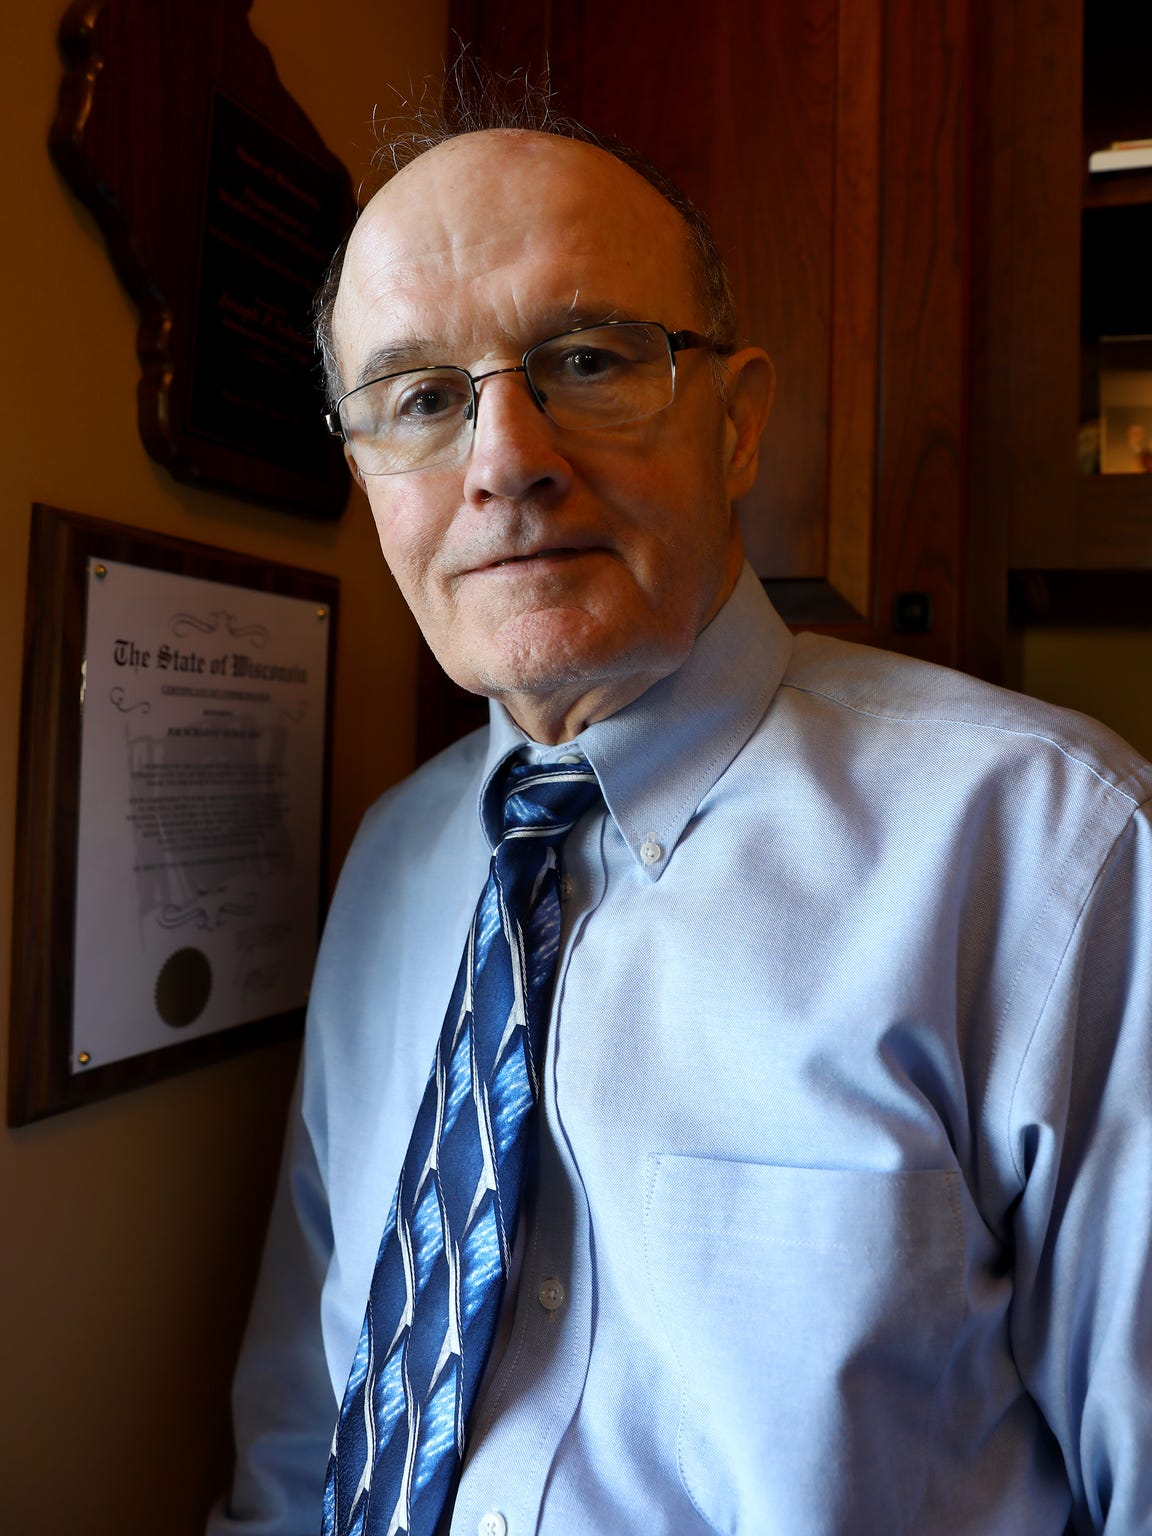 Retired administrative law judge Joe Schaeve says during his 30 years hearing worker's compensation cases in Wisconsin, the opinions of some independent medical examiners were highly predictable, often finding against injured workers.